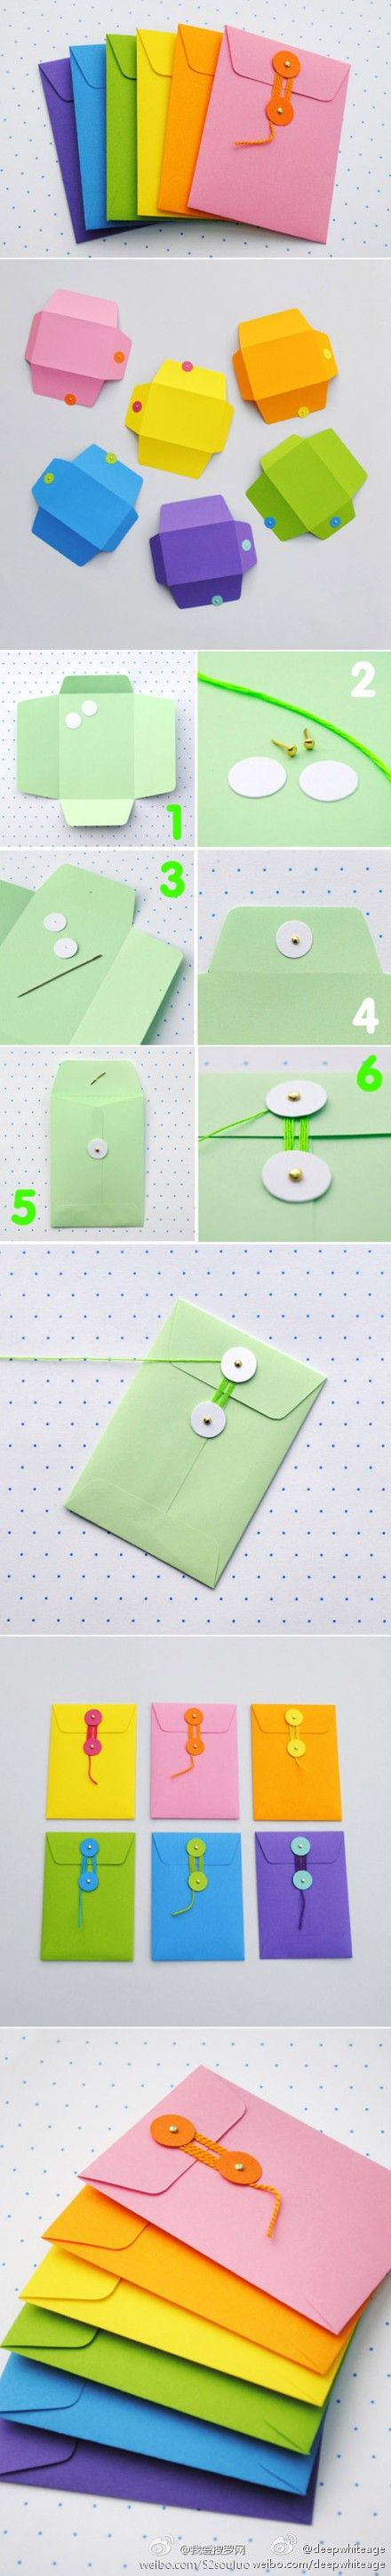 How to make string tie envelopes to use as paper pockets